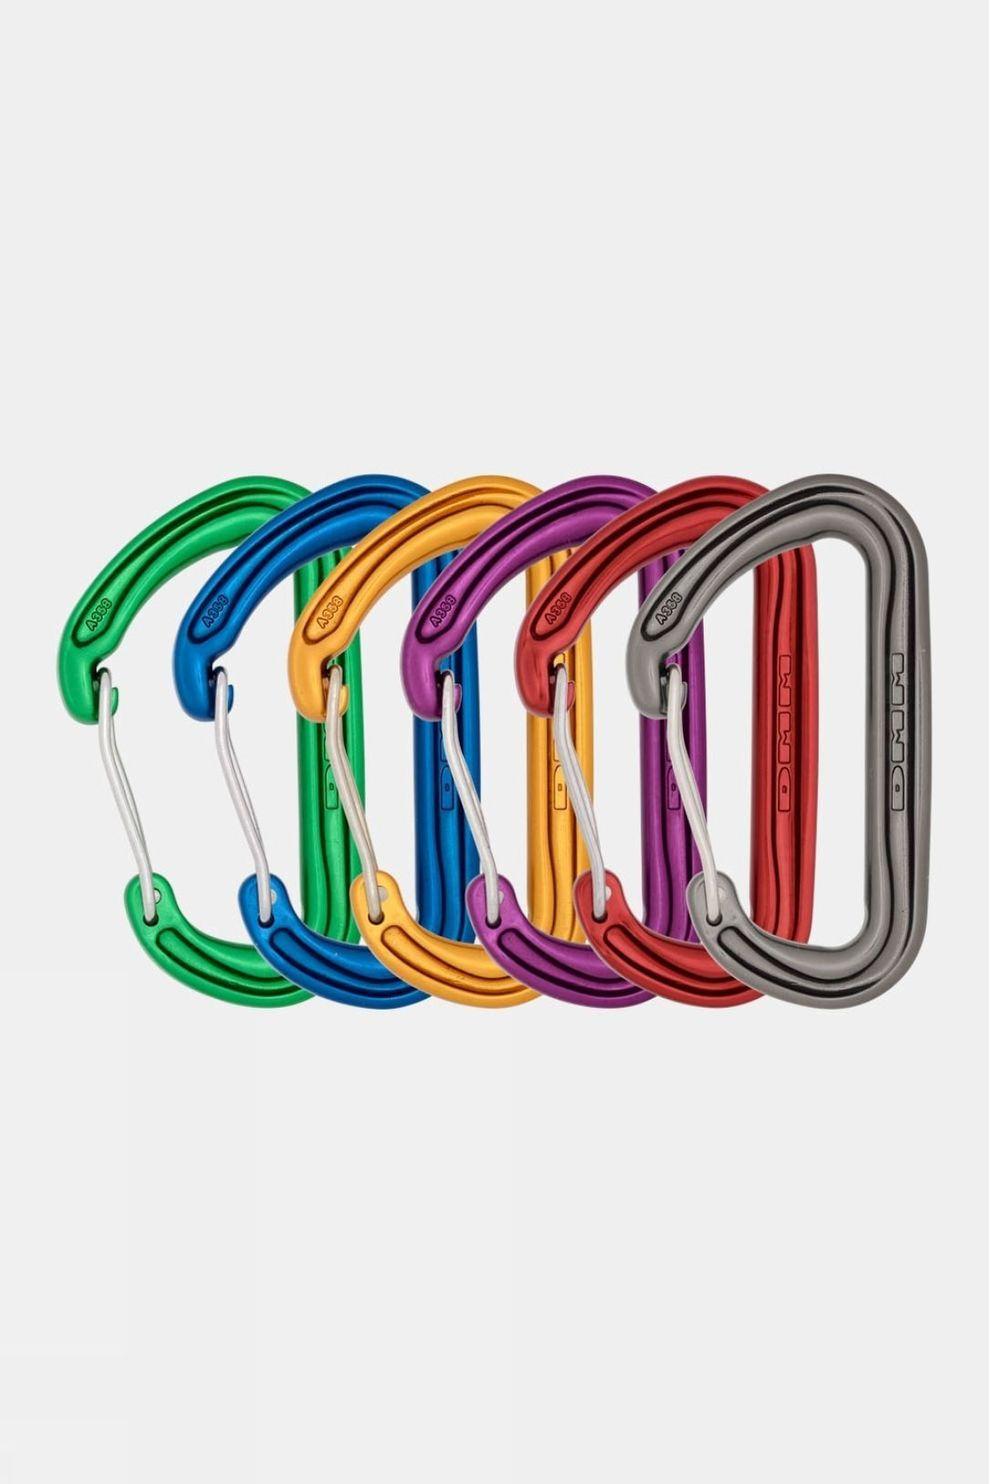 DMM Spectre Colour 6 Pack Assorted Carabiners